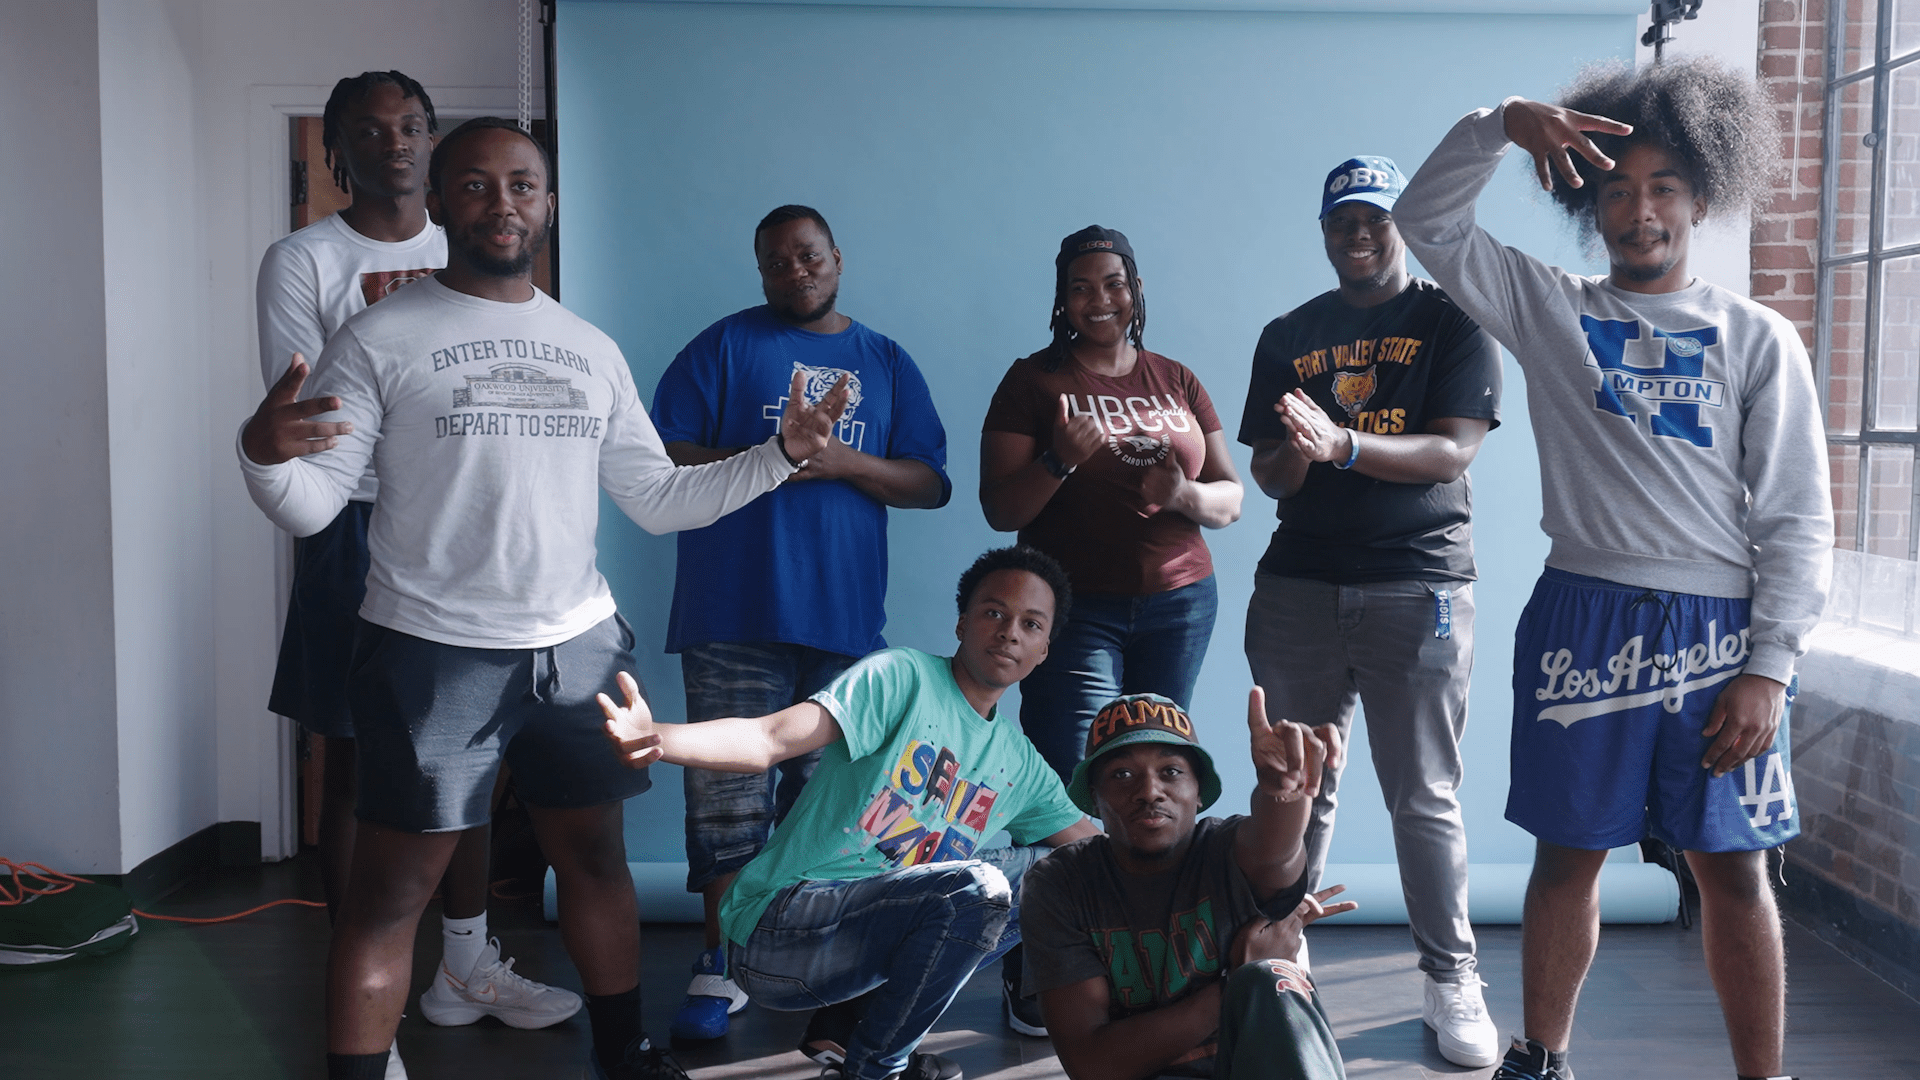 Xbox & Cxmmunity Team Up To Bless Over 50 HBCUs With Xbox Kits